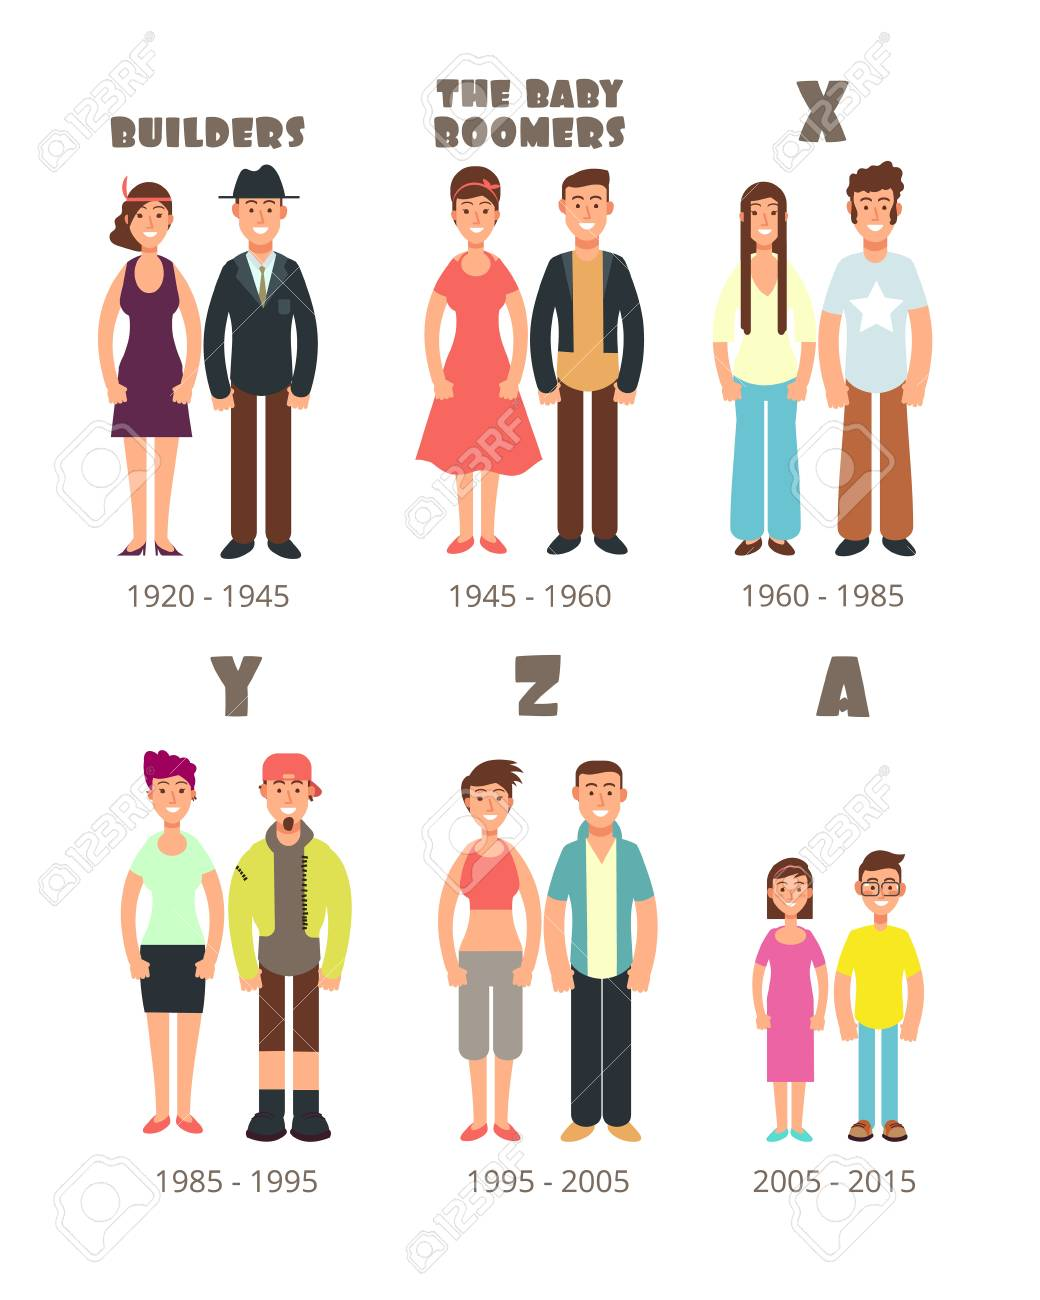 Baby boomer, x generation vector people icons.